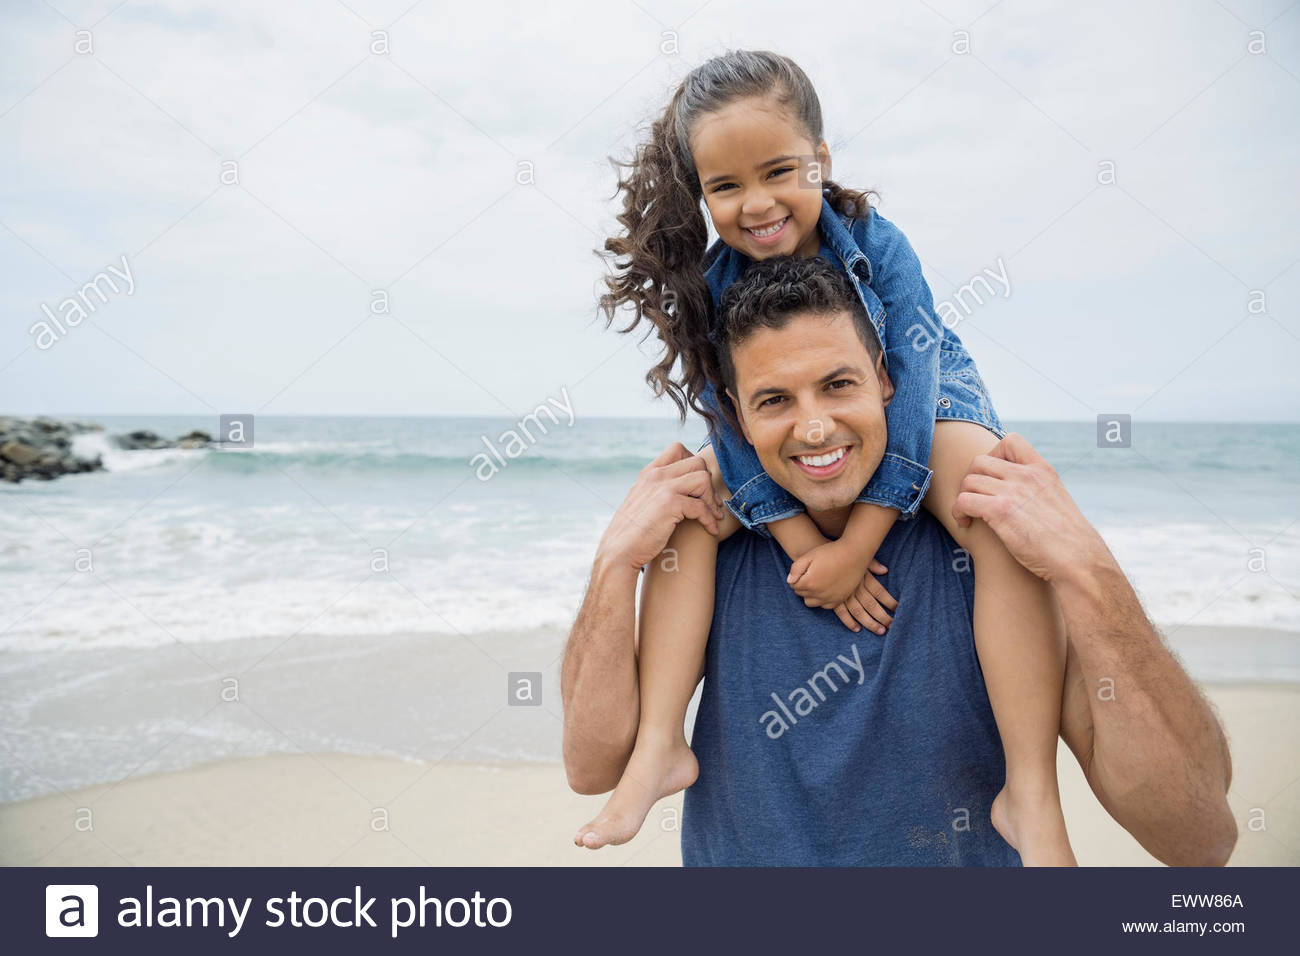 Portrait smiling father carrying daughter on shoulders beach Photo Stock